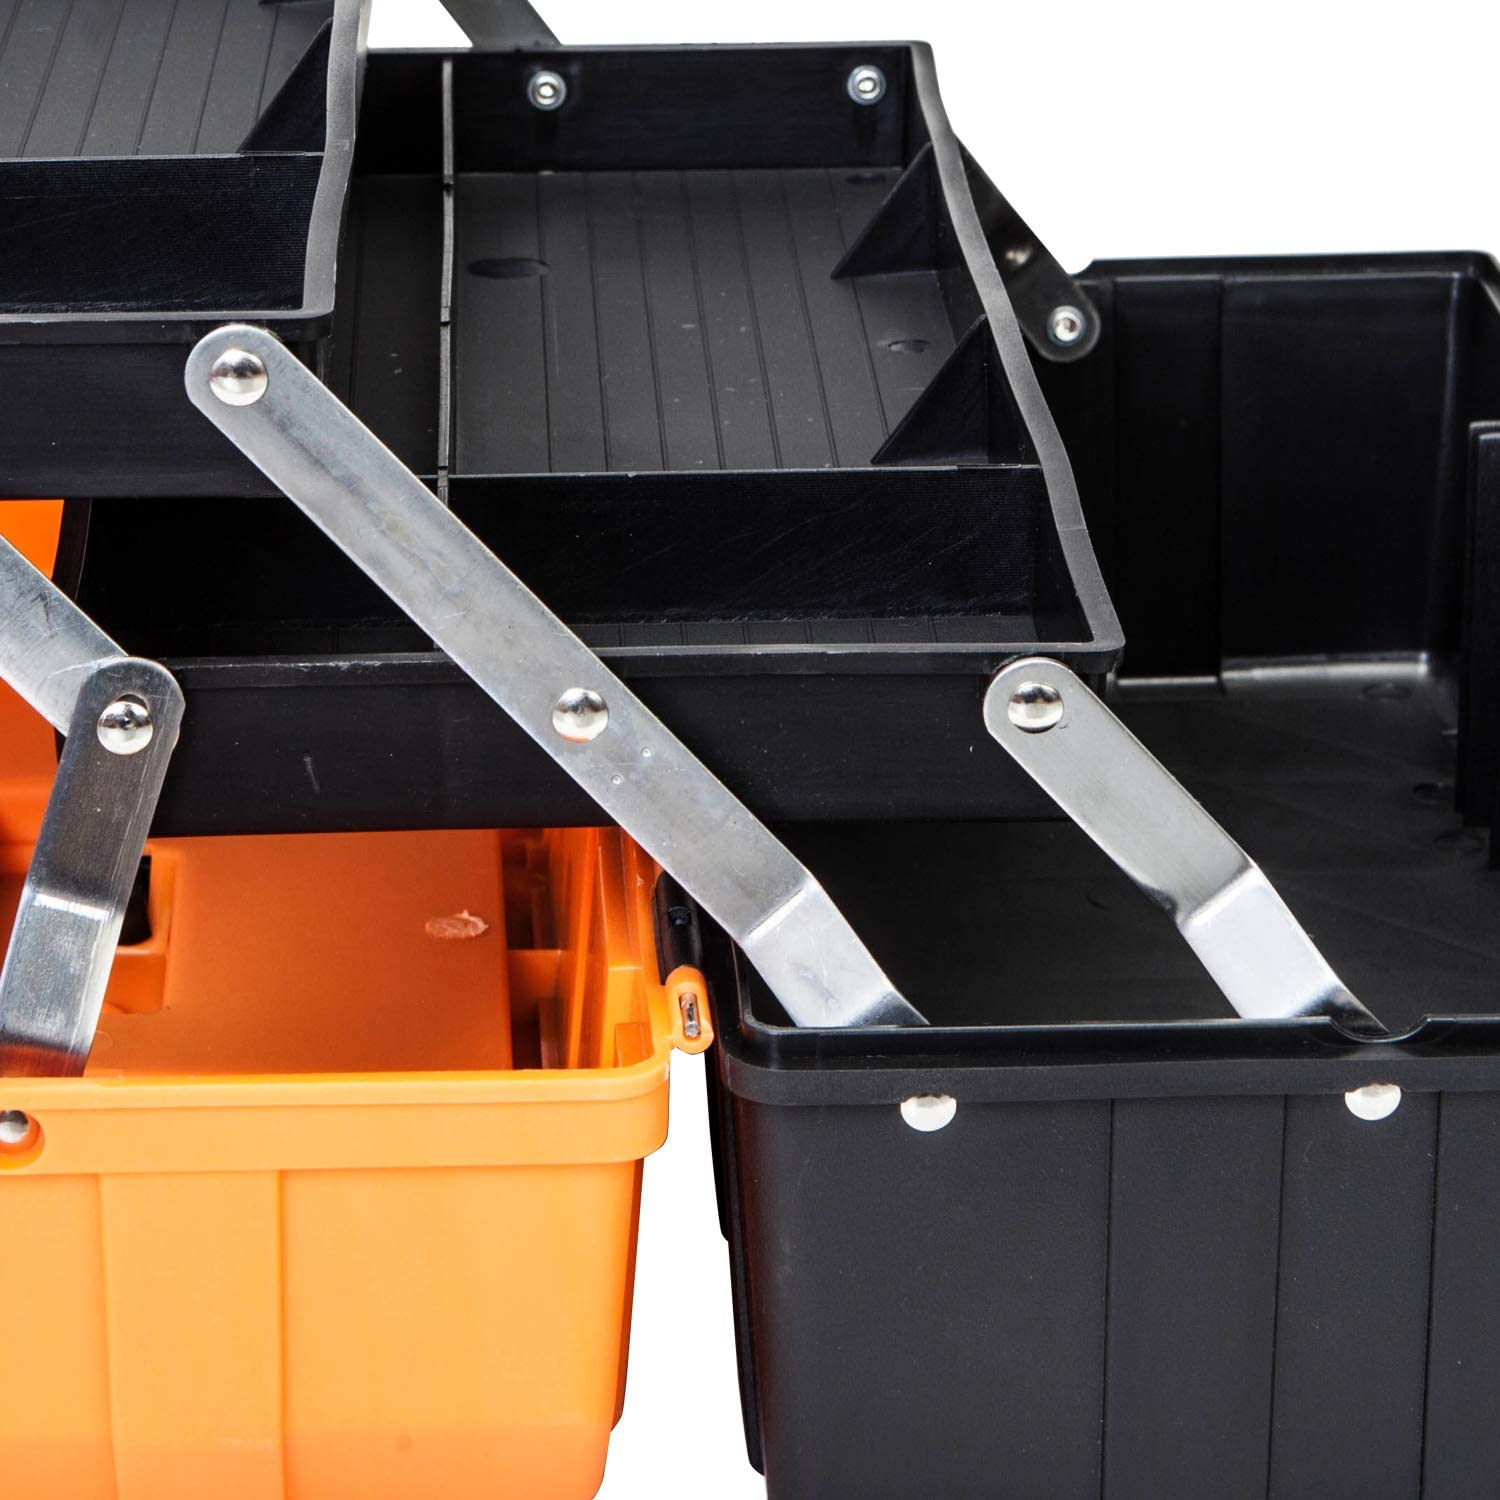 BIG RED ATRJH-3430B Torin 17 Plastic 3-Layer Multi-Function Storage Tool Box with Tray and Dividers Black//Orange